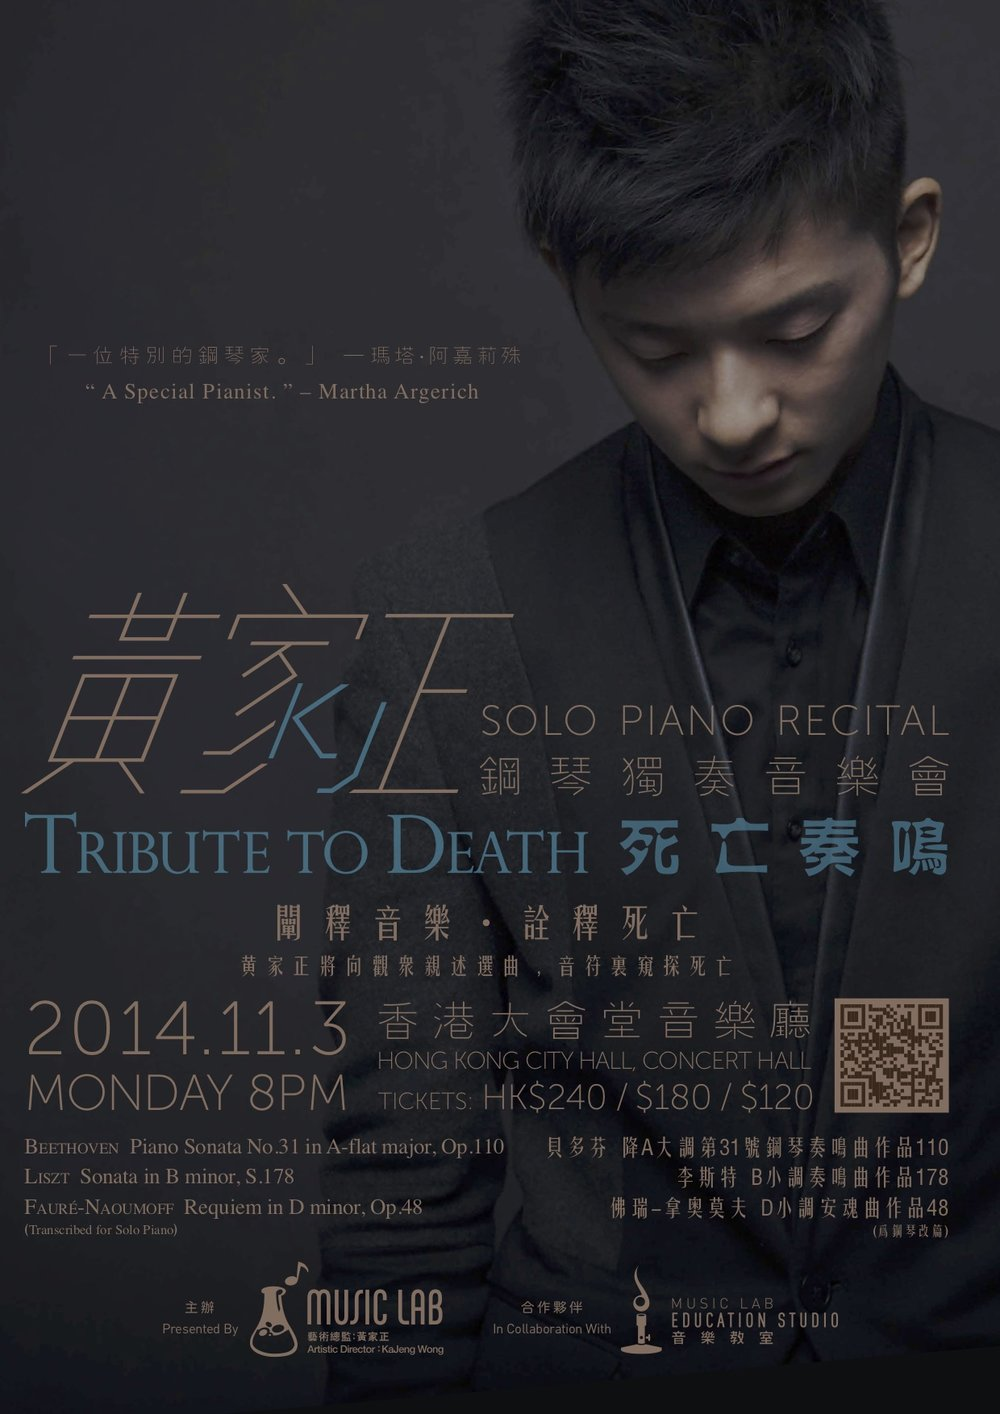 "KJ Solo Piano Recital: Tribute to Death  - Death is inevitable, yet a taboo. The mystery of death has formed our culture, haunted our civilization, shadowed our existence.Pianist KaJeng Wong brings us an unconventional recital, ""Tribute to Death"", programming the masterpieces by Beethoven, Liszt and Fauré amongst his sharing on philosophy of life and death.PROGRAMMEPiano Sonata No.31 in A-flat major, Op.110 – BeethovenSonata in B minor, S.178 – LisztRequiem in D minor, Op.48 (Transcribed for Solo Piano) – Fauré-Naoumoff"